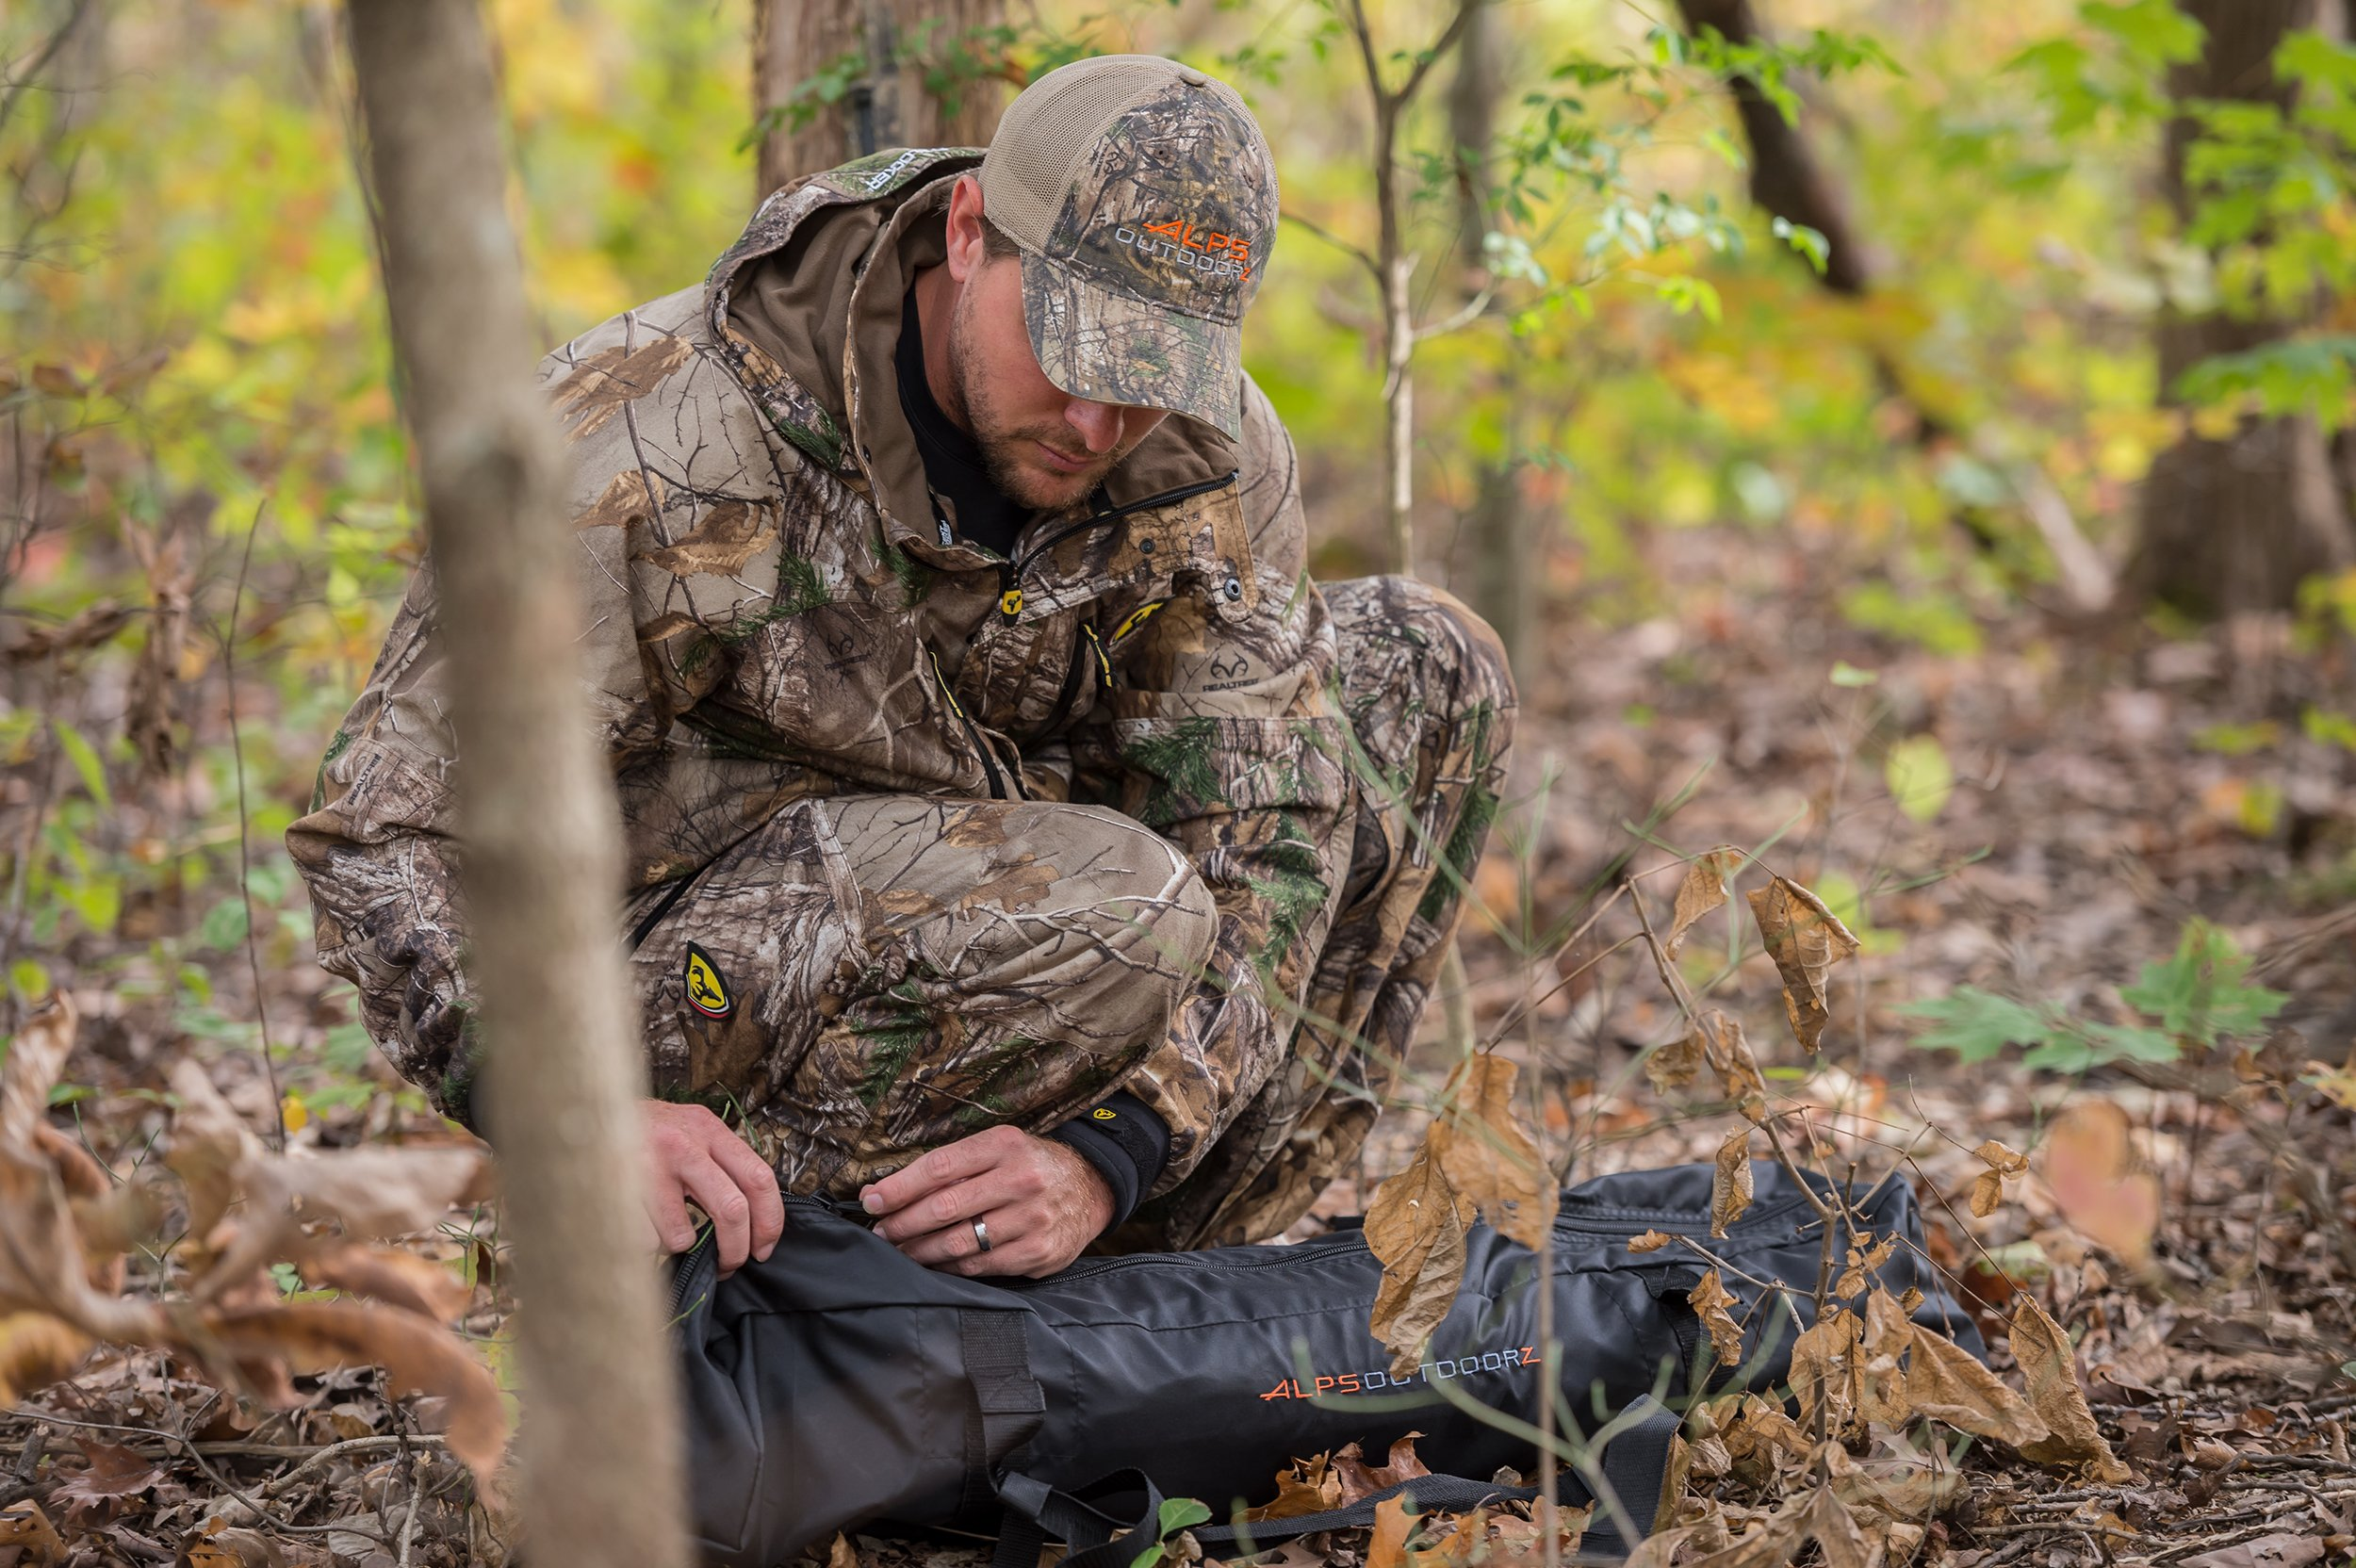 ALPS OutdoorZ NWTF Deception Hunting Blind, Mossy Oak Obsession by ALPS OutdoorZ (Image #6)